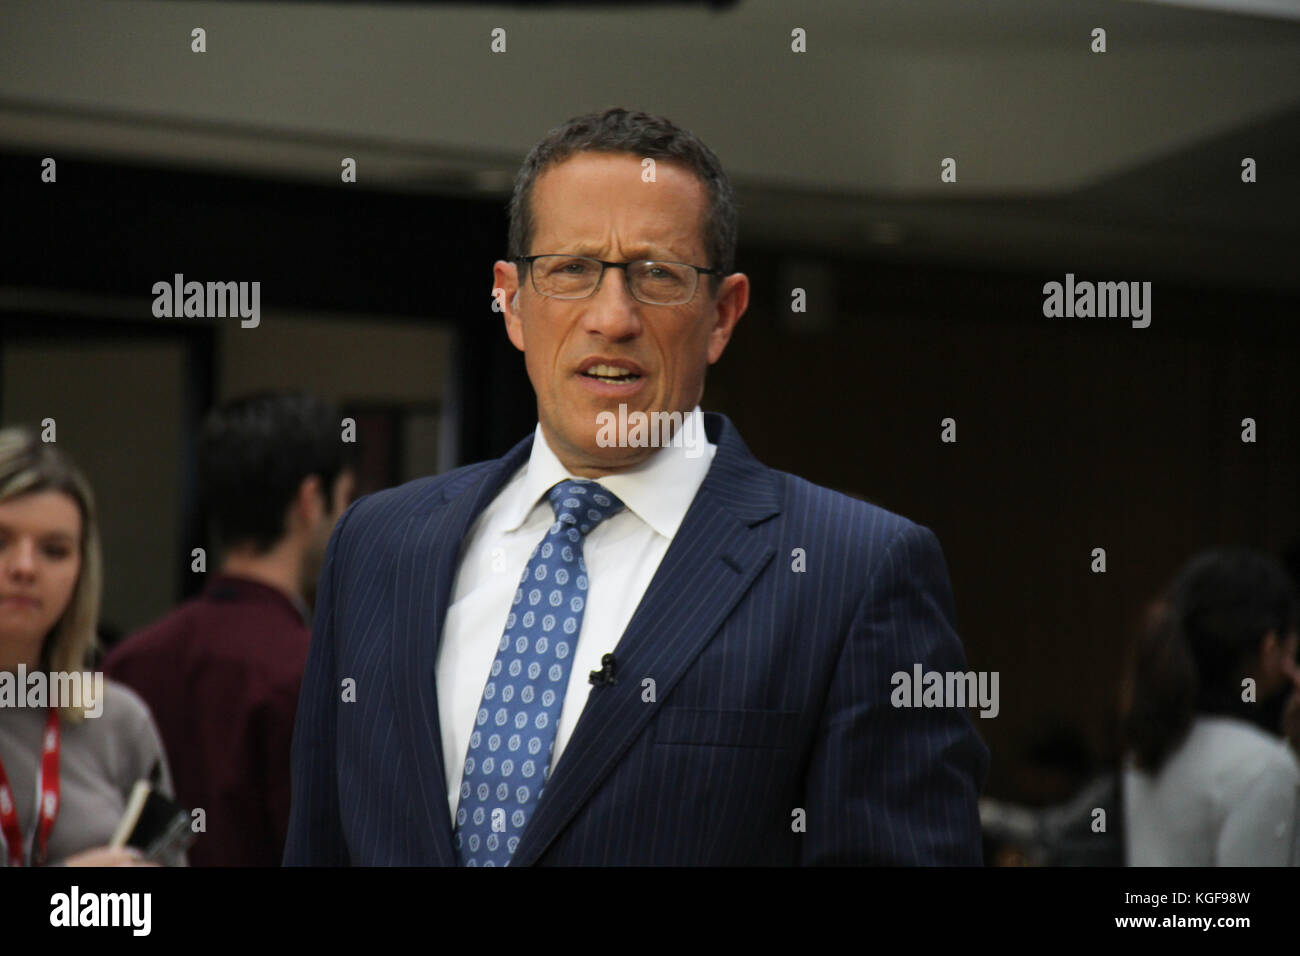 London, UK. 7th Nov, 2017. CNN's Bussines anchor Richard Quest seen on set ahead of a live broadcast at the - Stock Image